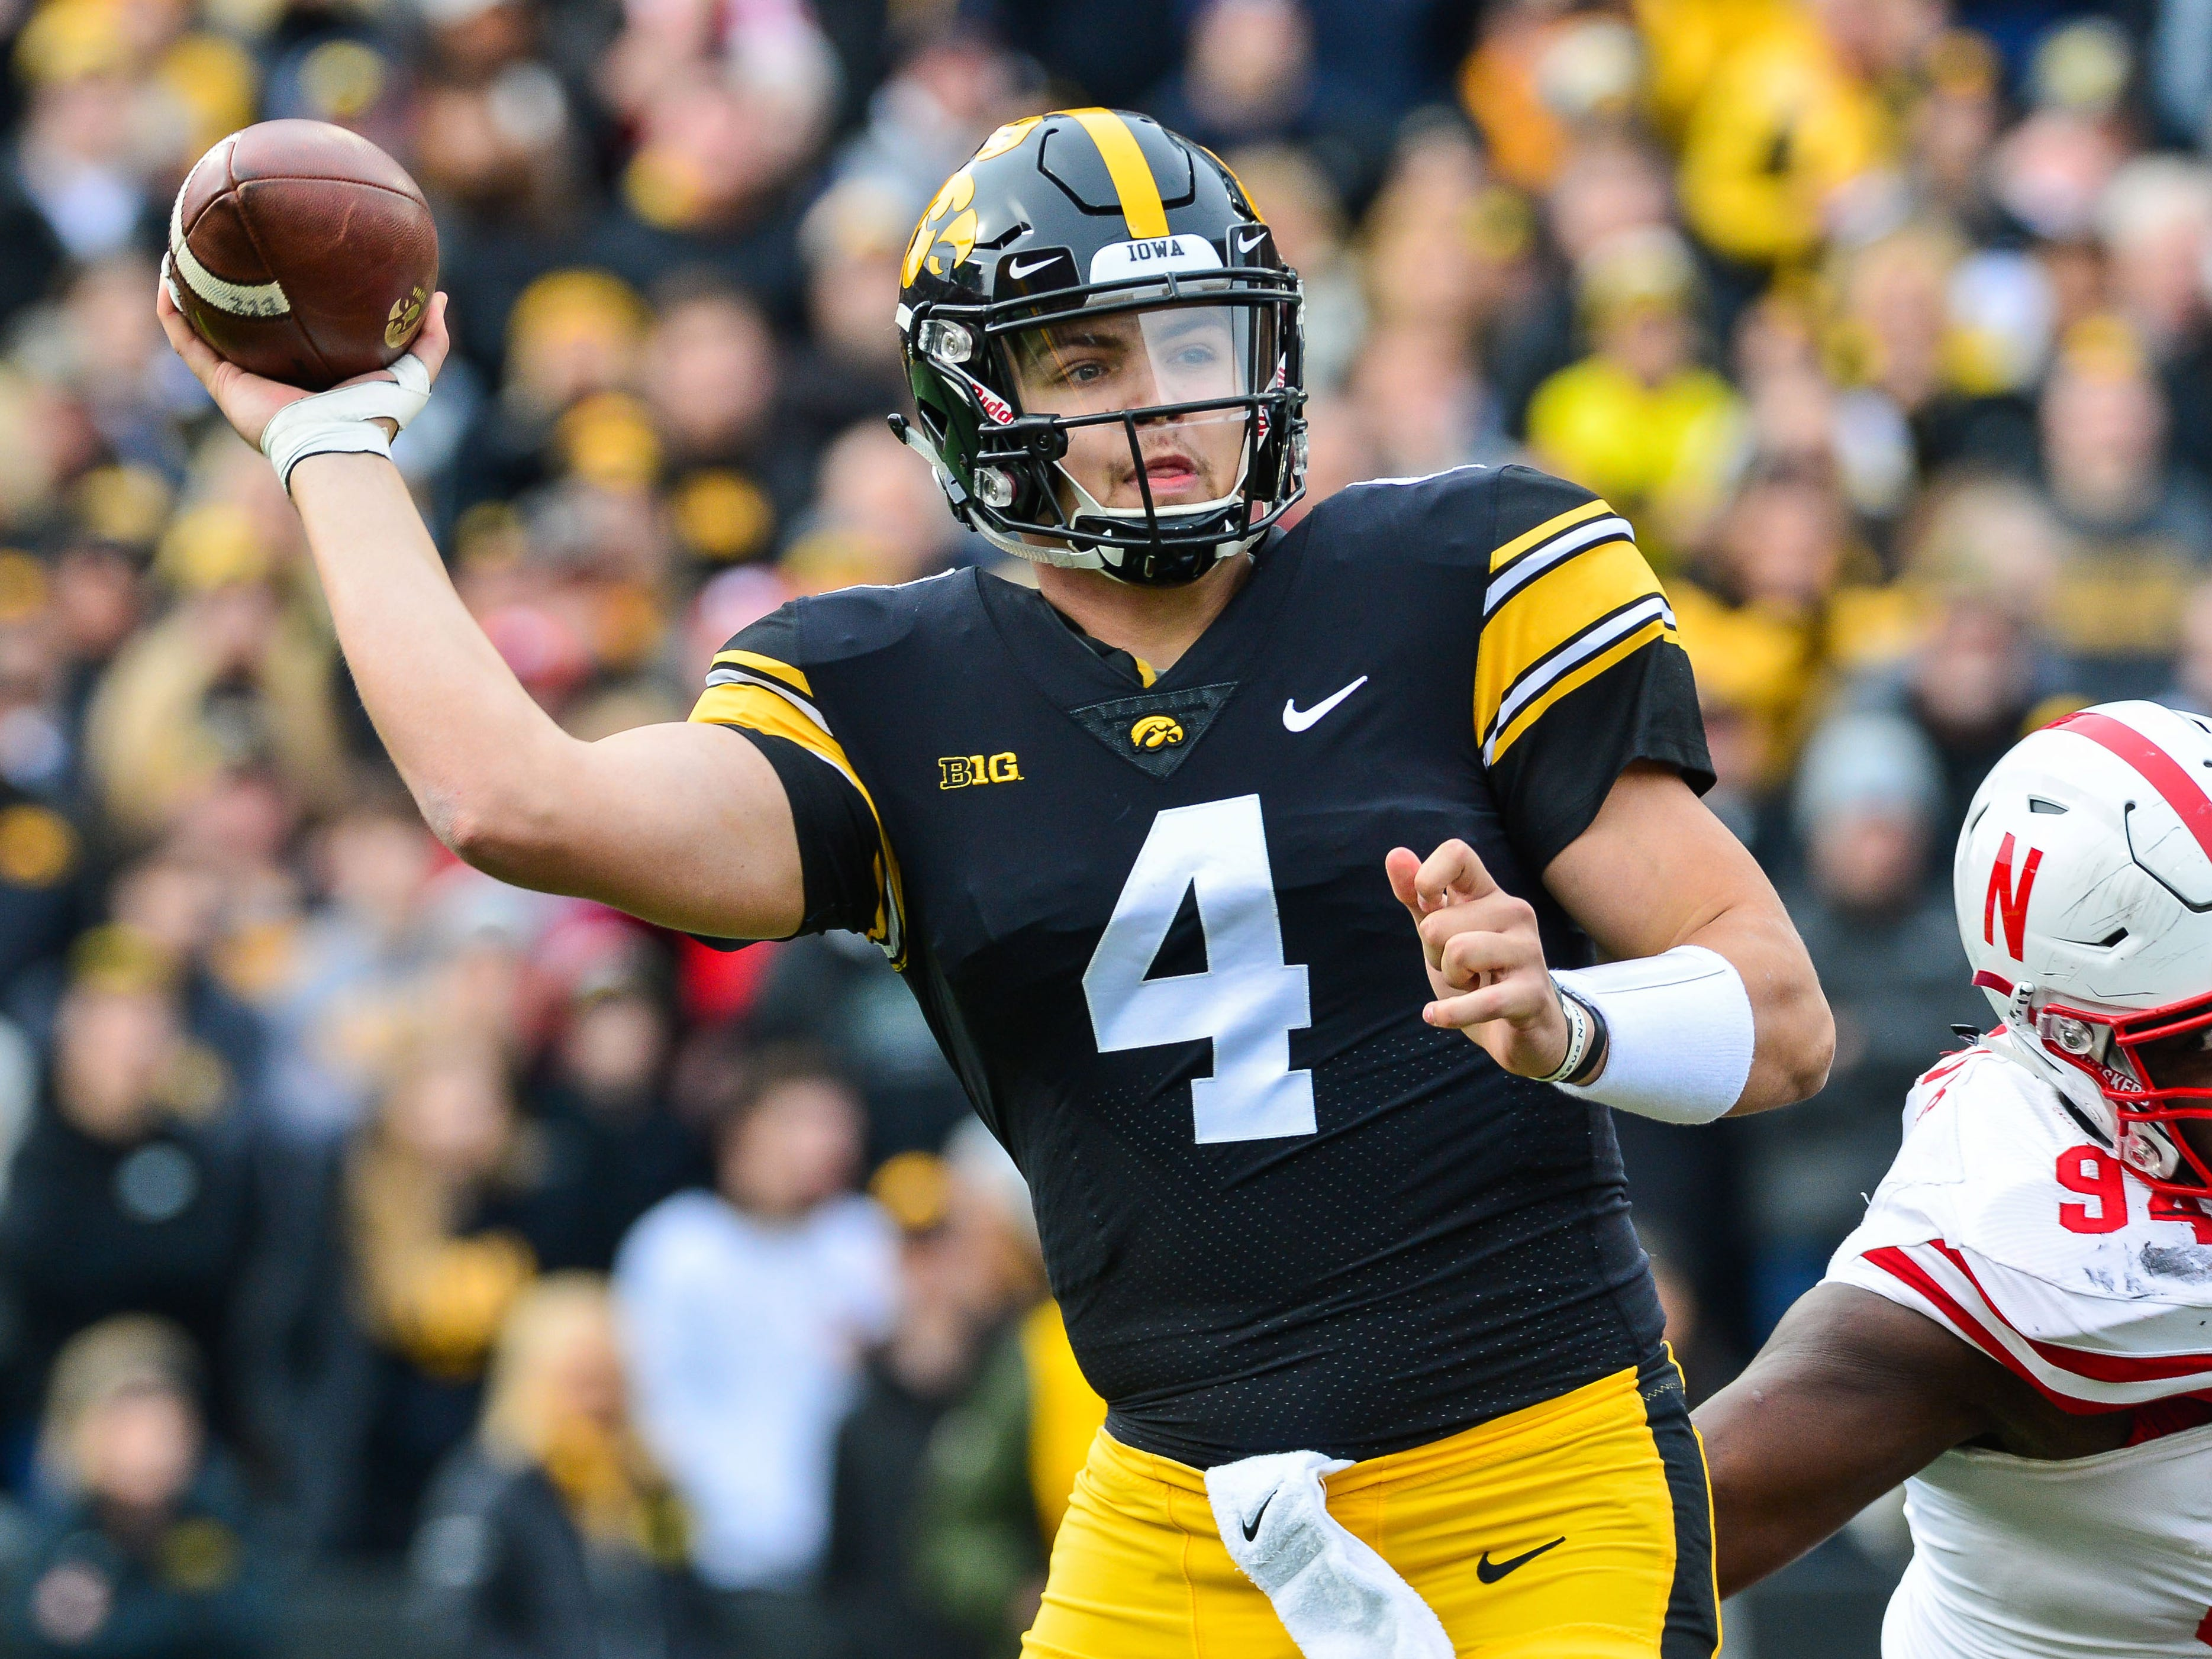 Leistikow: Iowa's Nate Stanley opens up about his critics, his thumb and the NFL